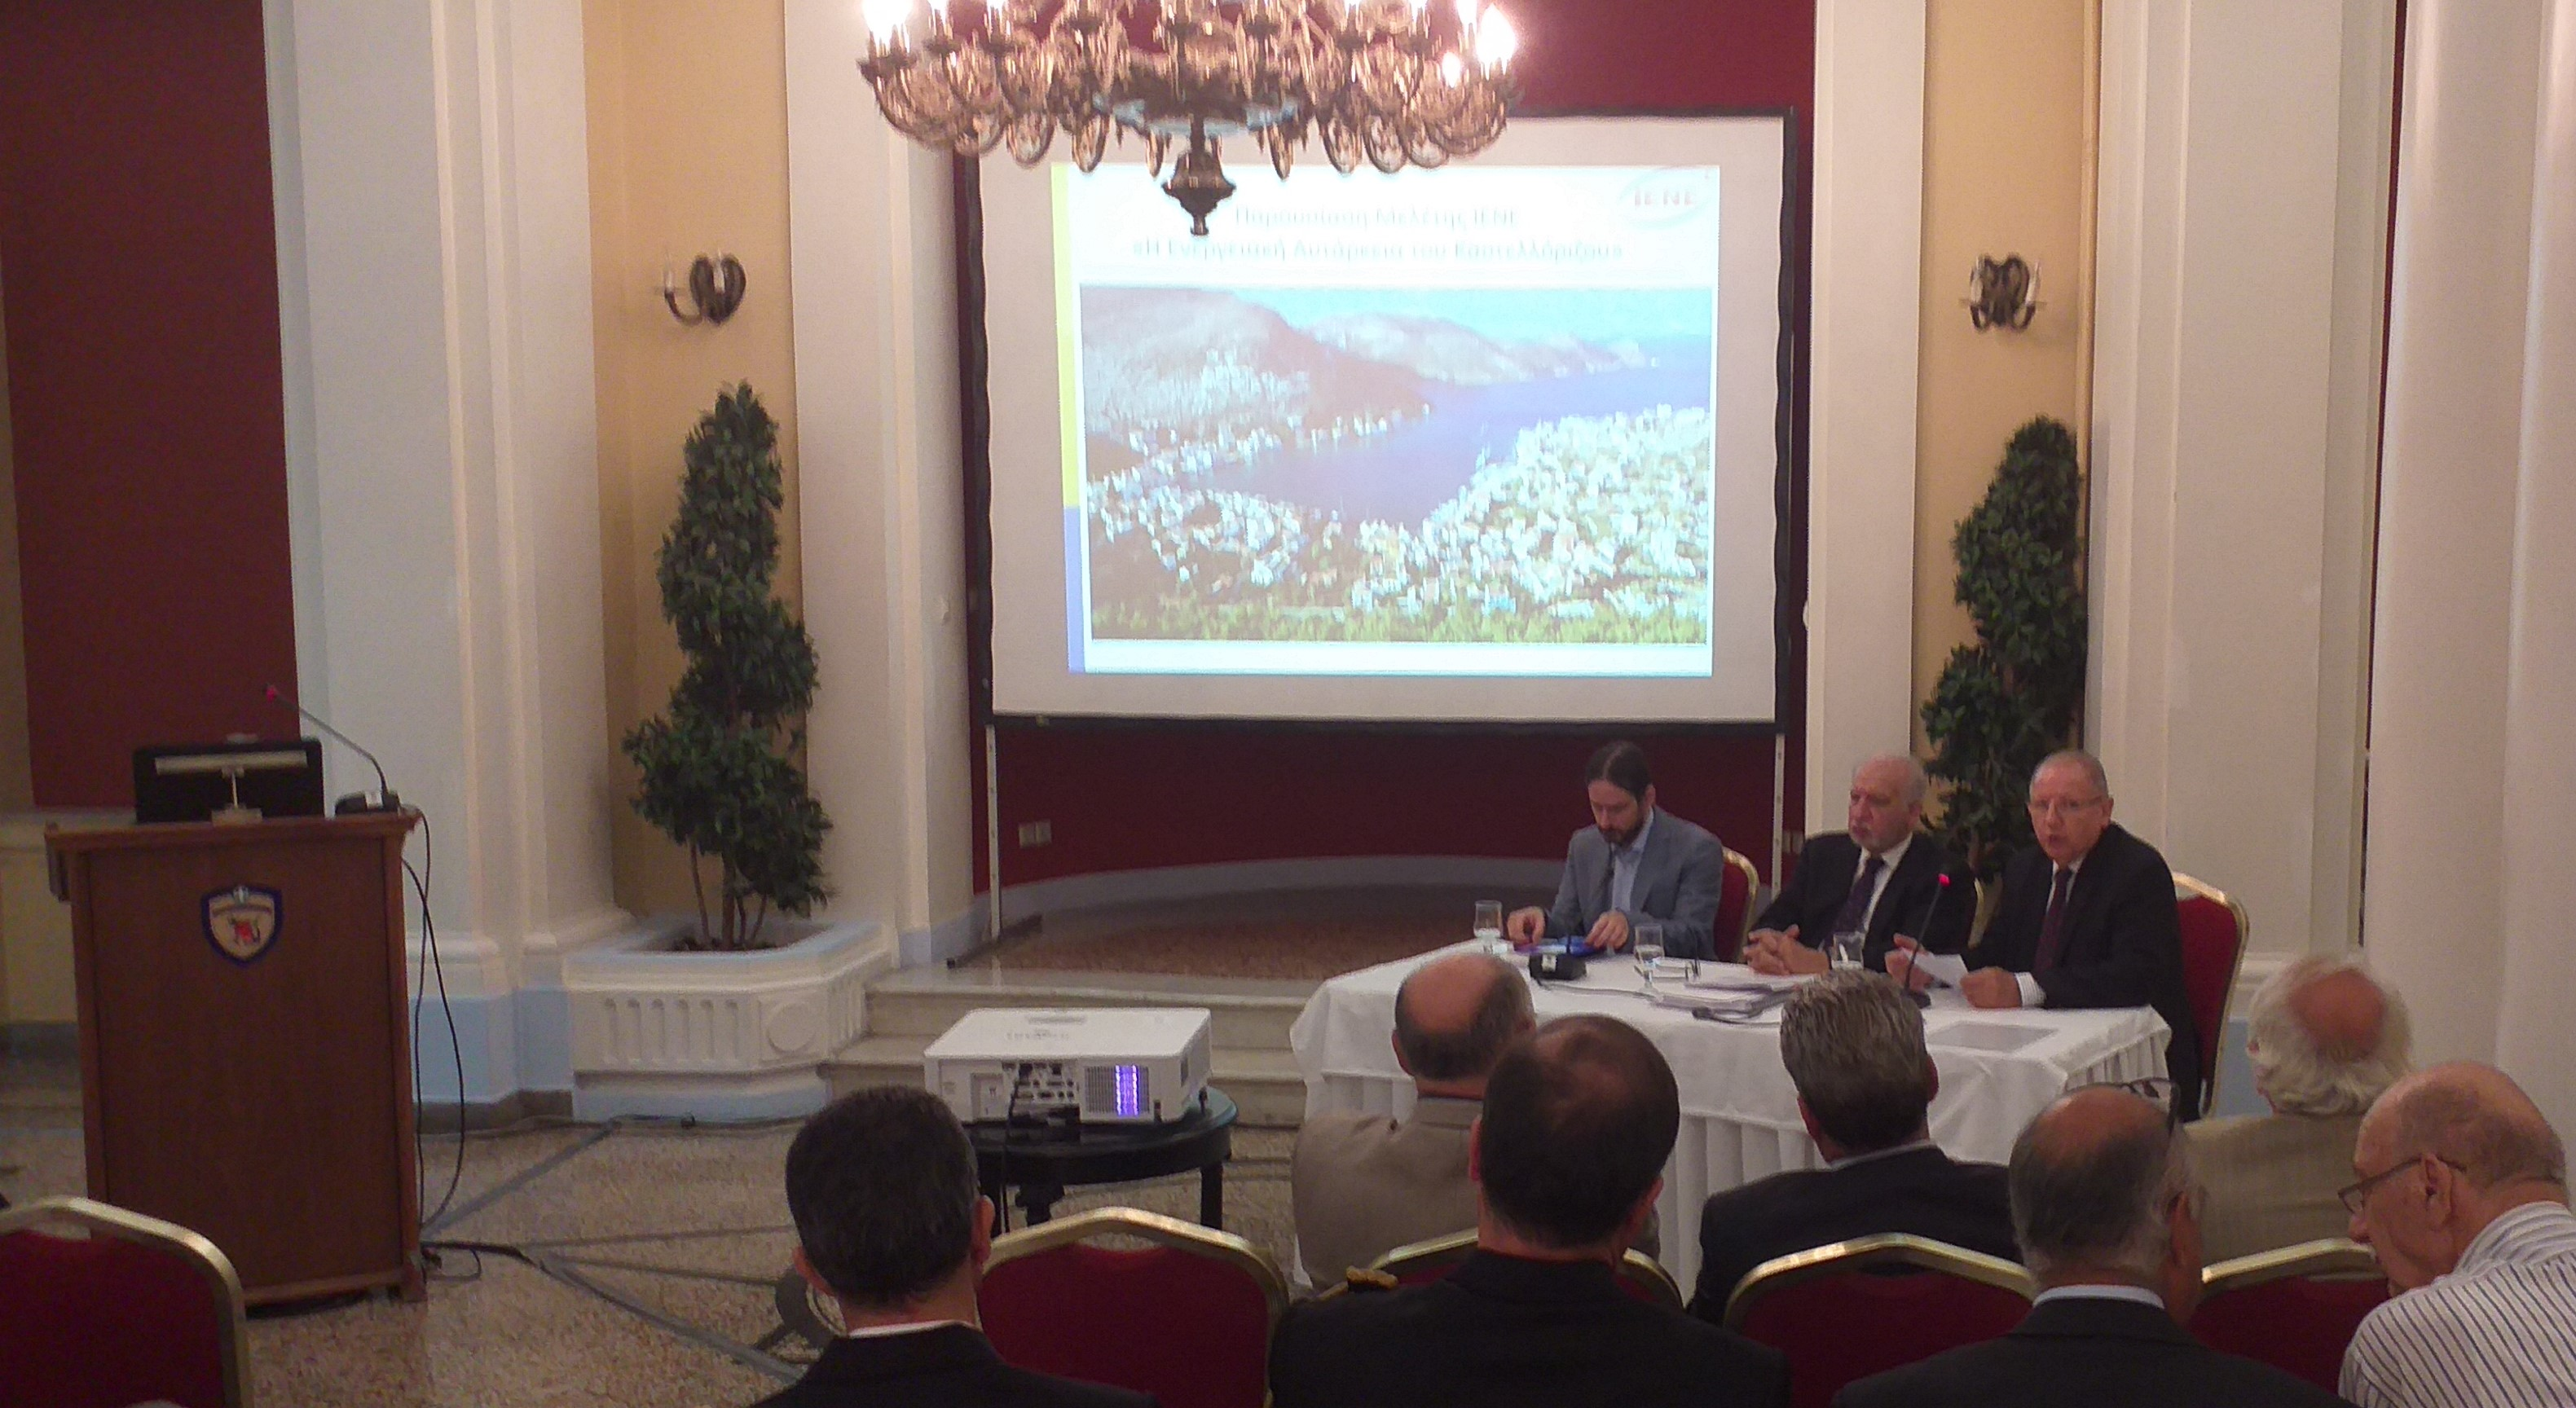 """IENE Presented Study on the """"Energy Transition of the Island of Kastellorizo"""" in a Special Event in Athens"""